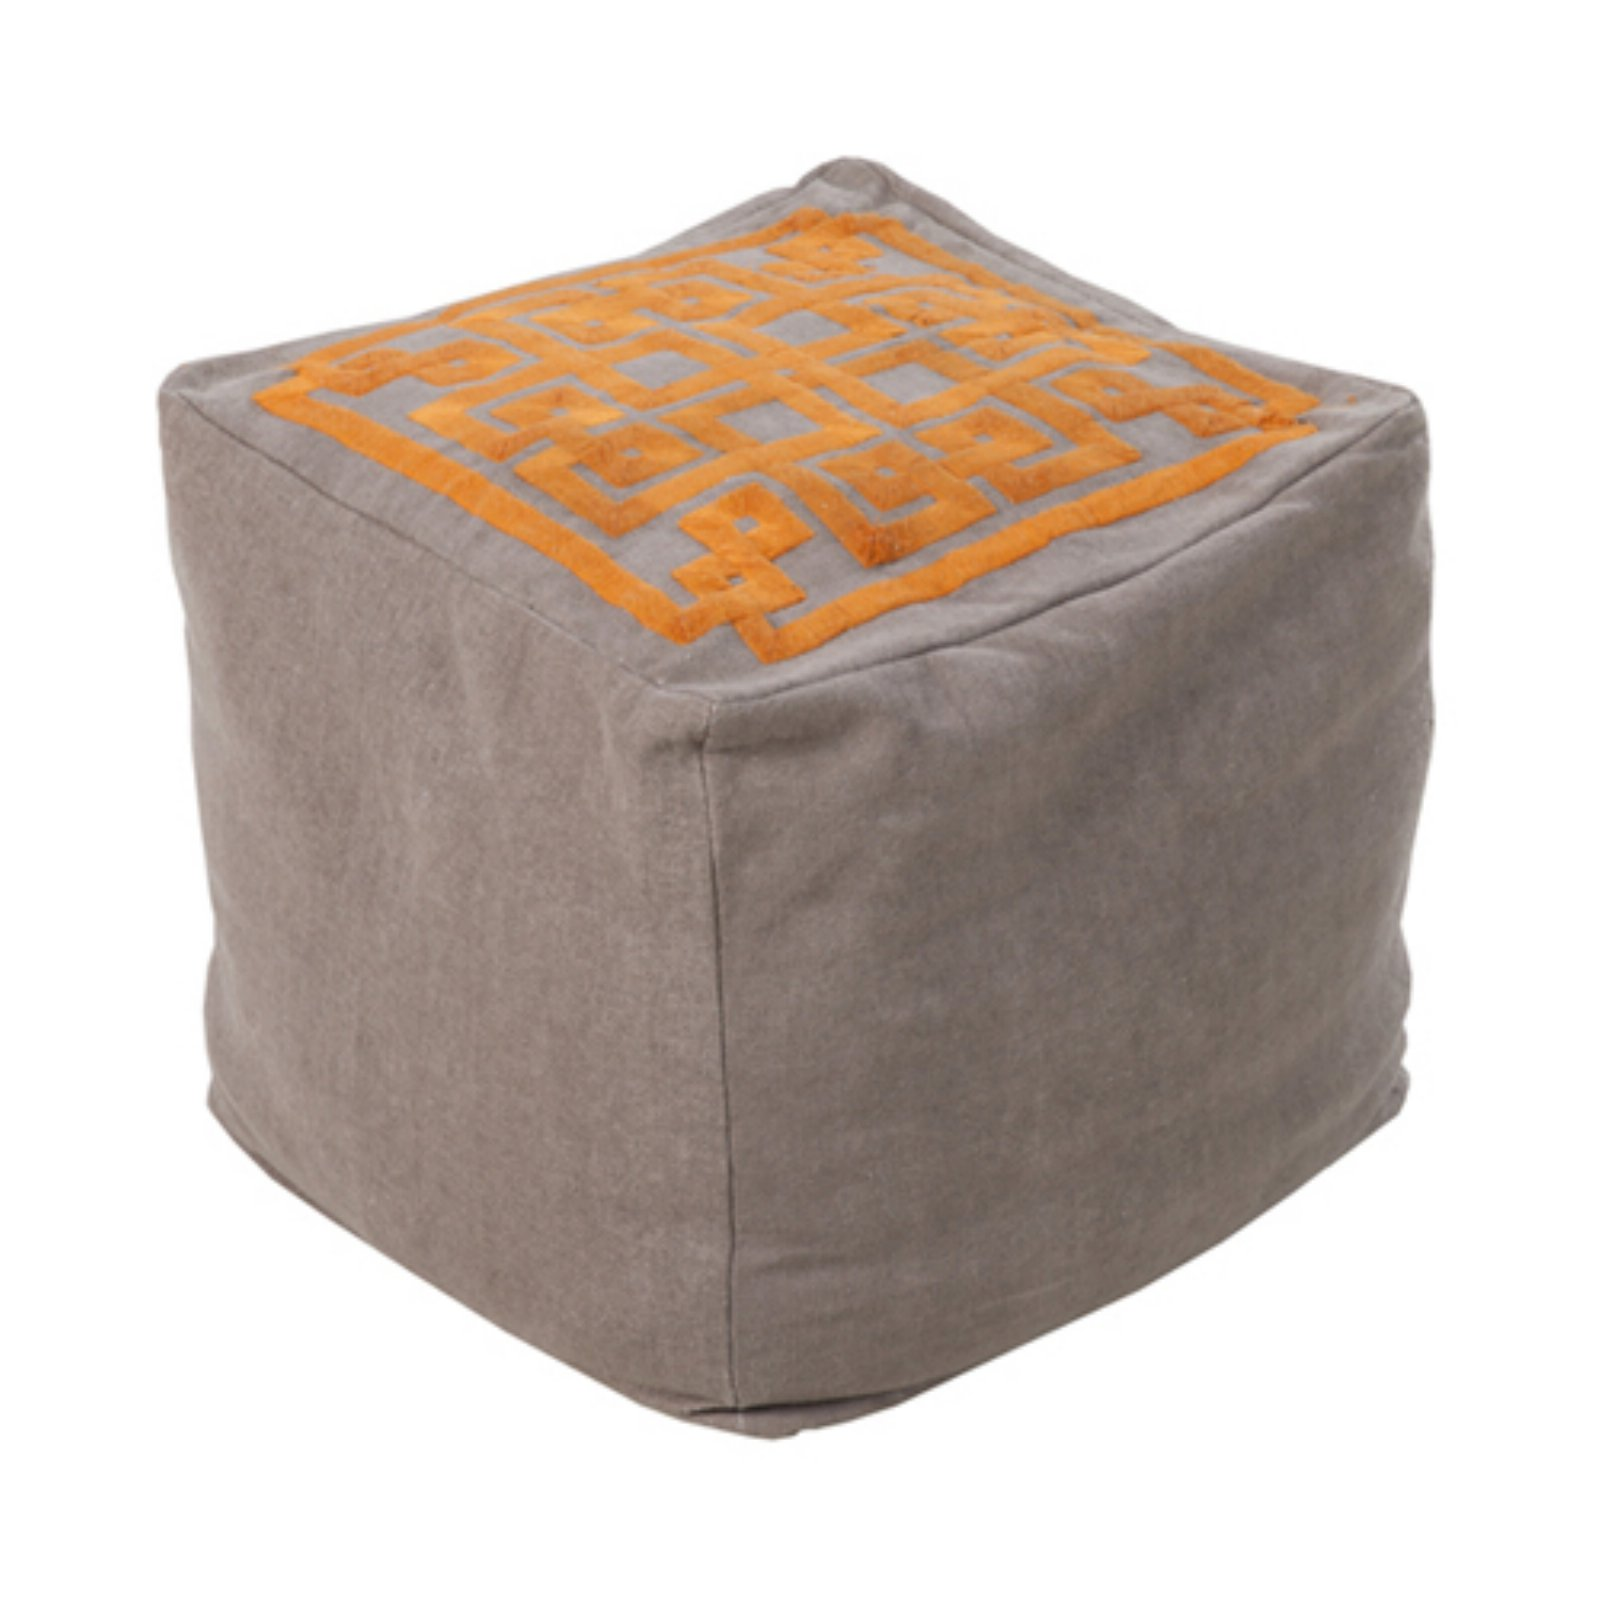 Surya 18 in. Cube Linen Greek Key Pouf by Surya